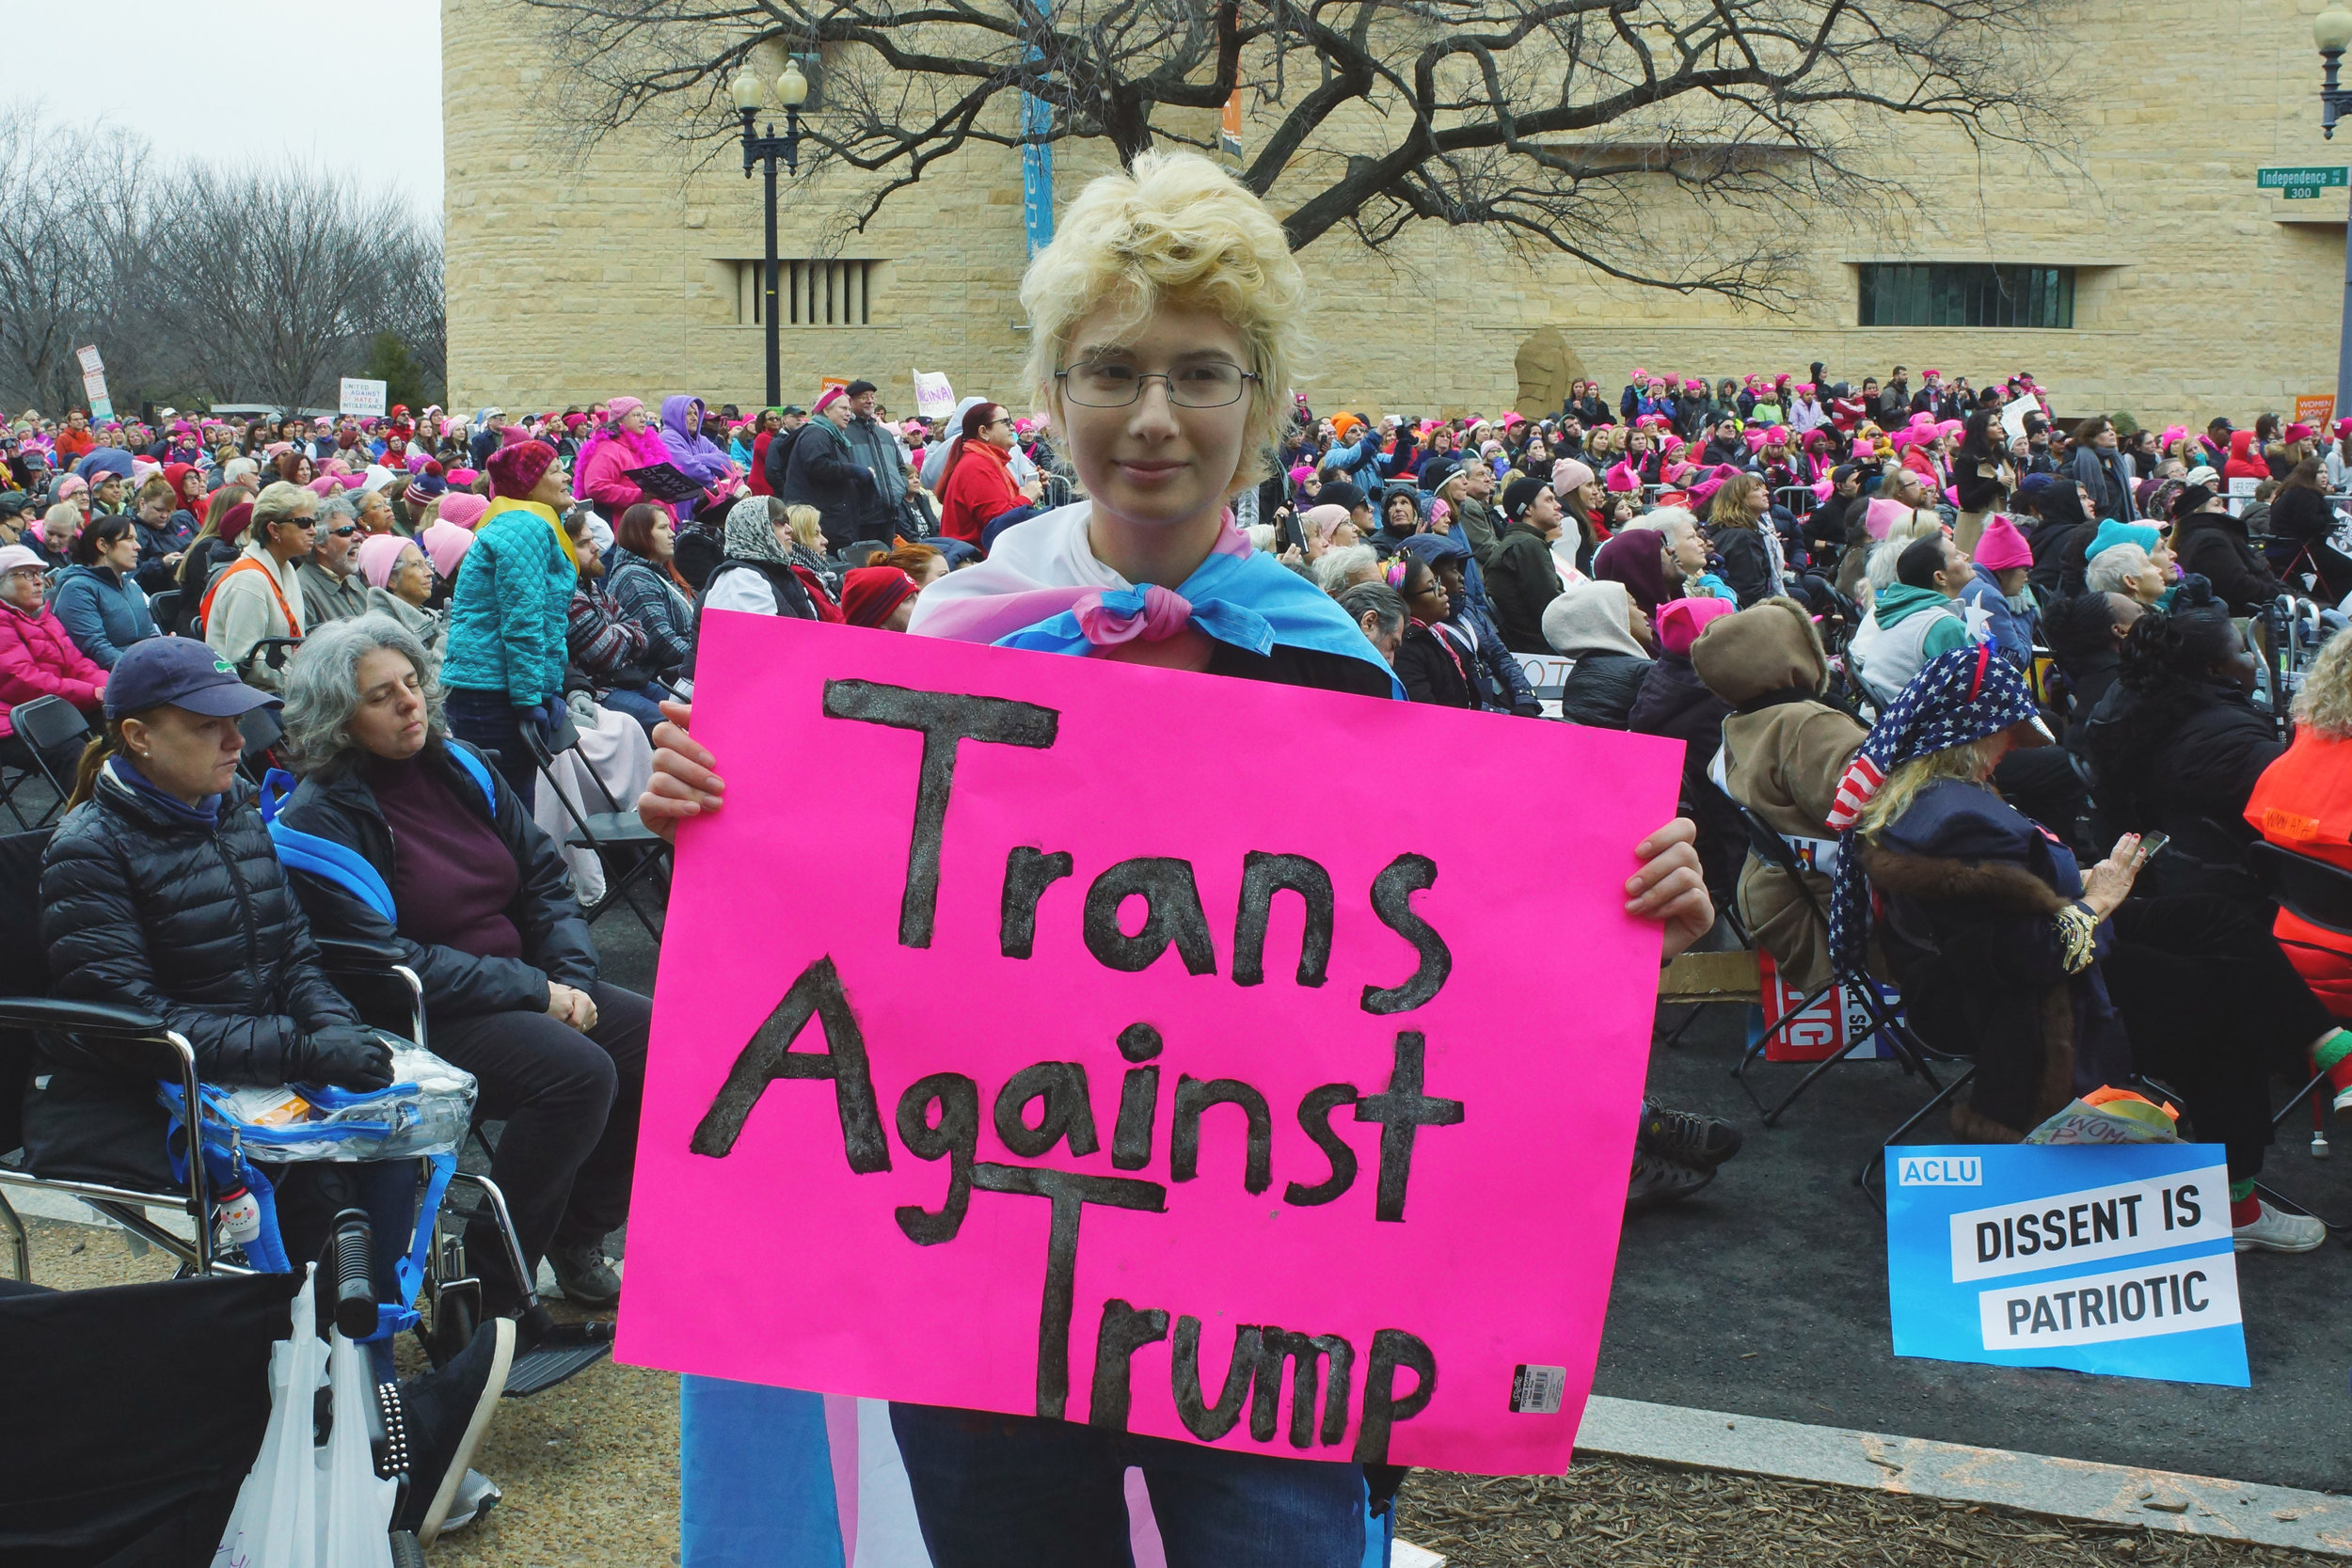 """[Image description: Alex, a blond trans* boy in glasses stands wearing a trans flag as a cape and carrying a pink sign with the words:""""Trans Against Trump."""" In the background, a large crowd is facing a the stage, not pictured. Resting against a chair to the right is an ACLU """"Dissent is Patriotic."""" sign]"""